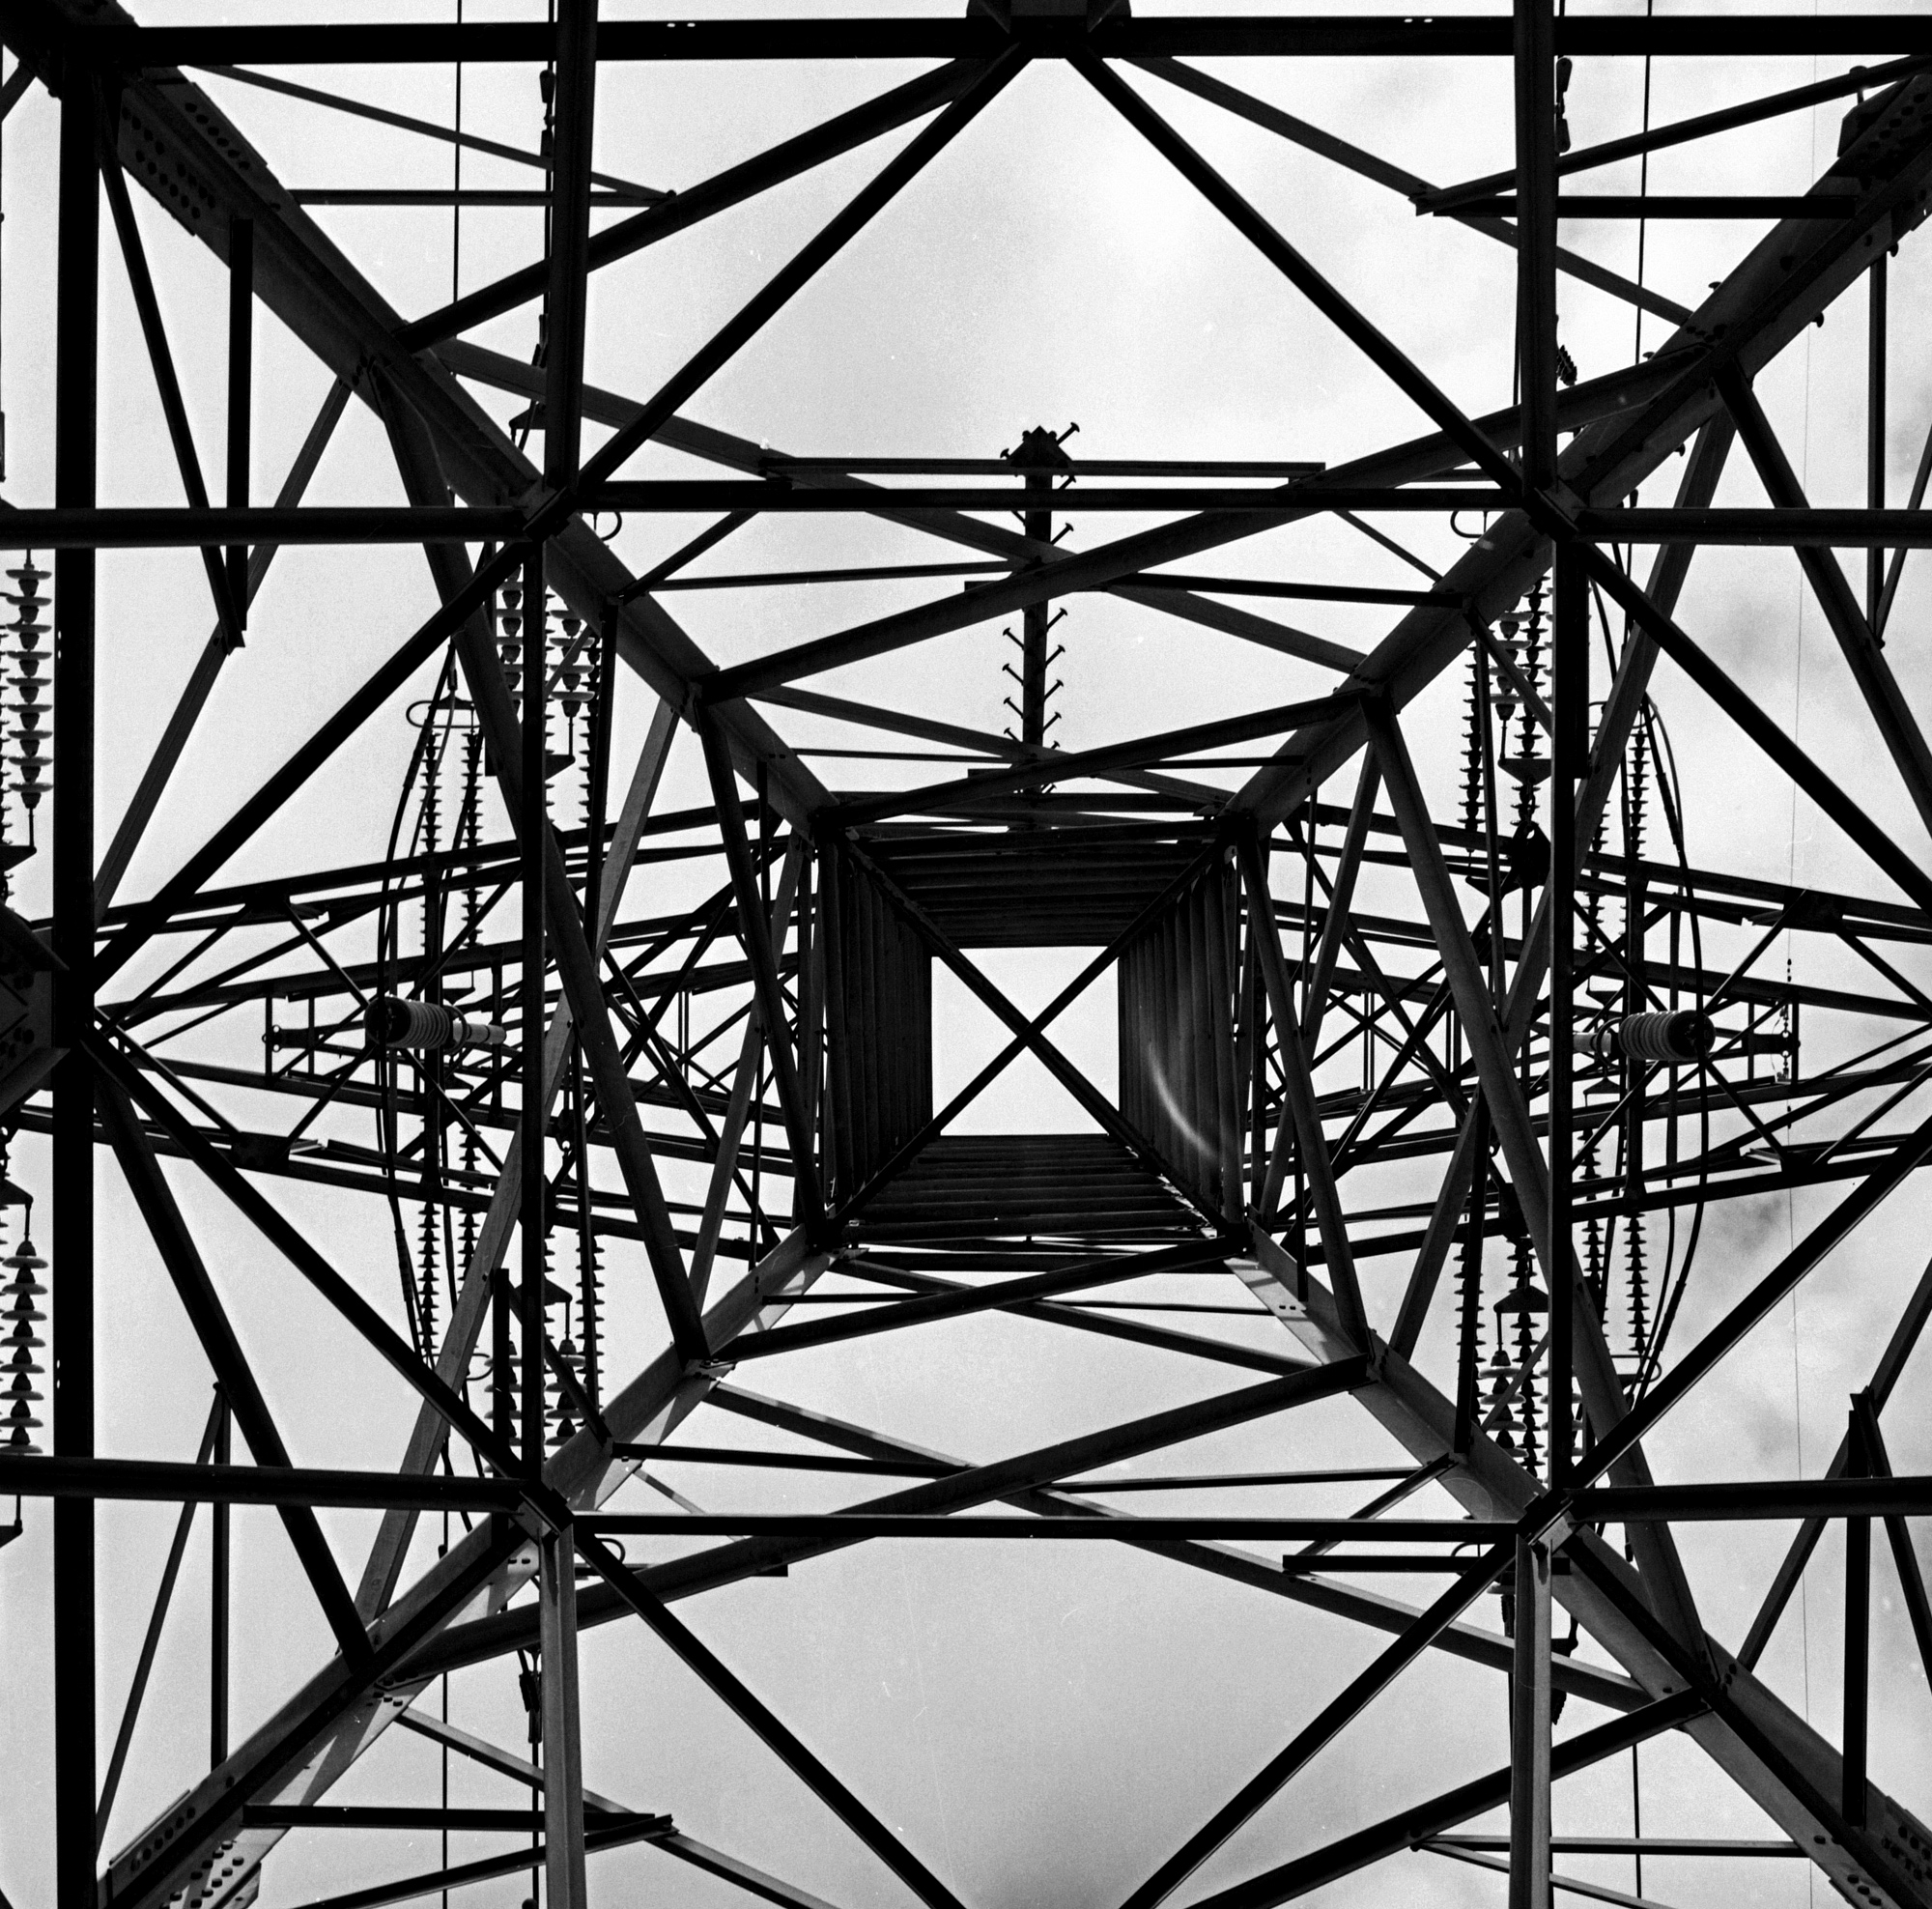 Power Tower No. 4